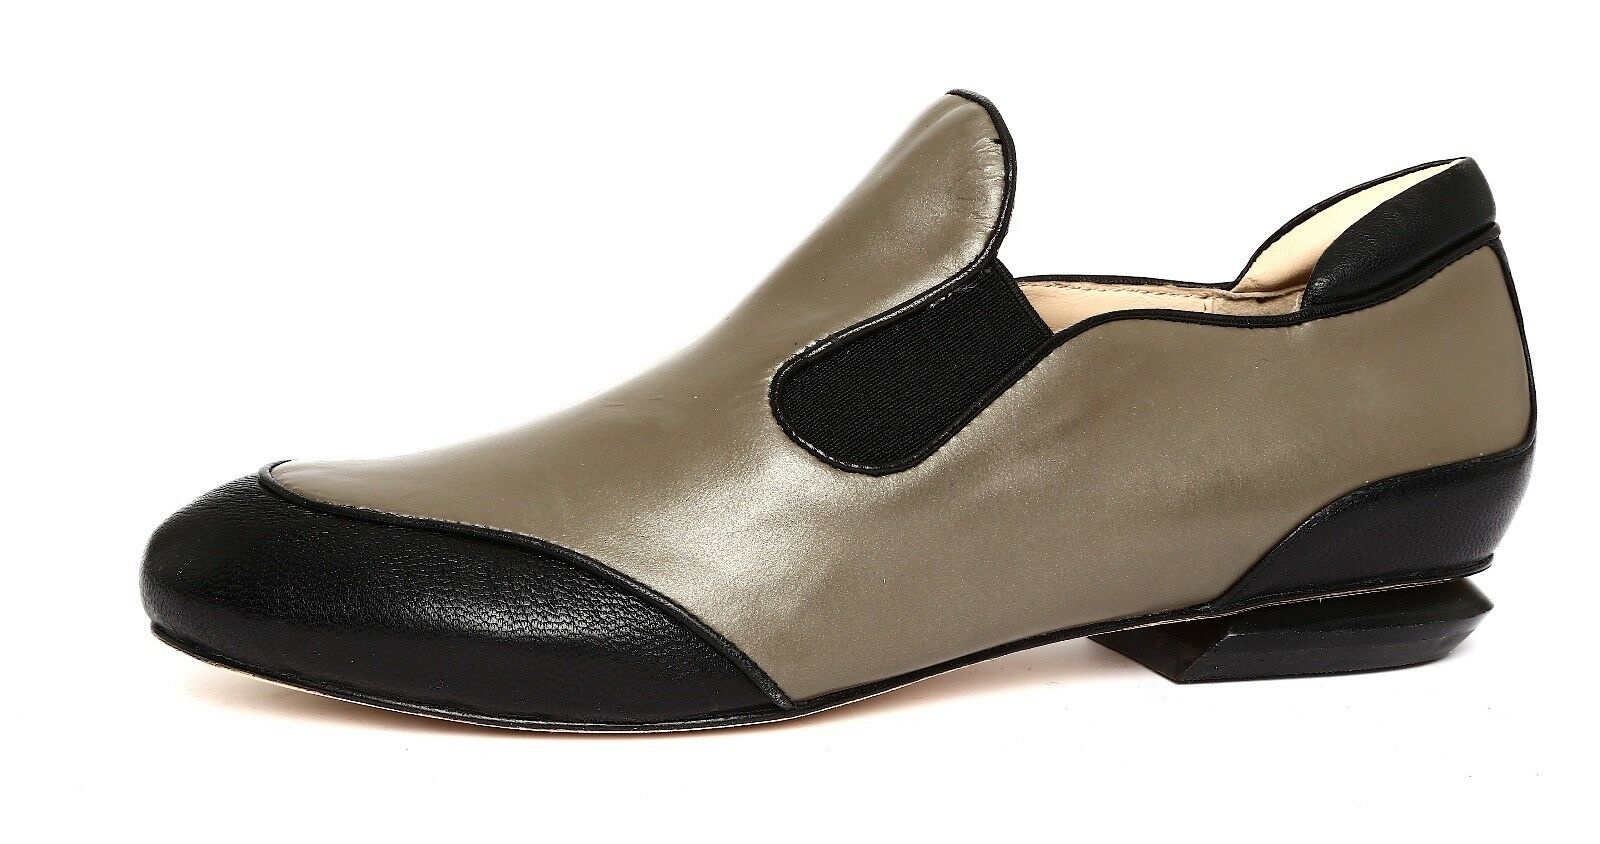 Ask Alice Women's Taupe Black Leather Slip On shoes Sz 36.5 EUR 4306